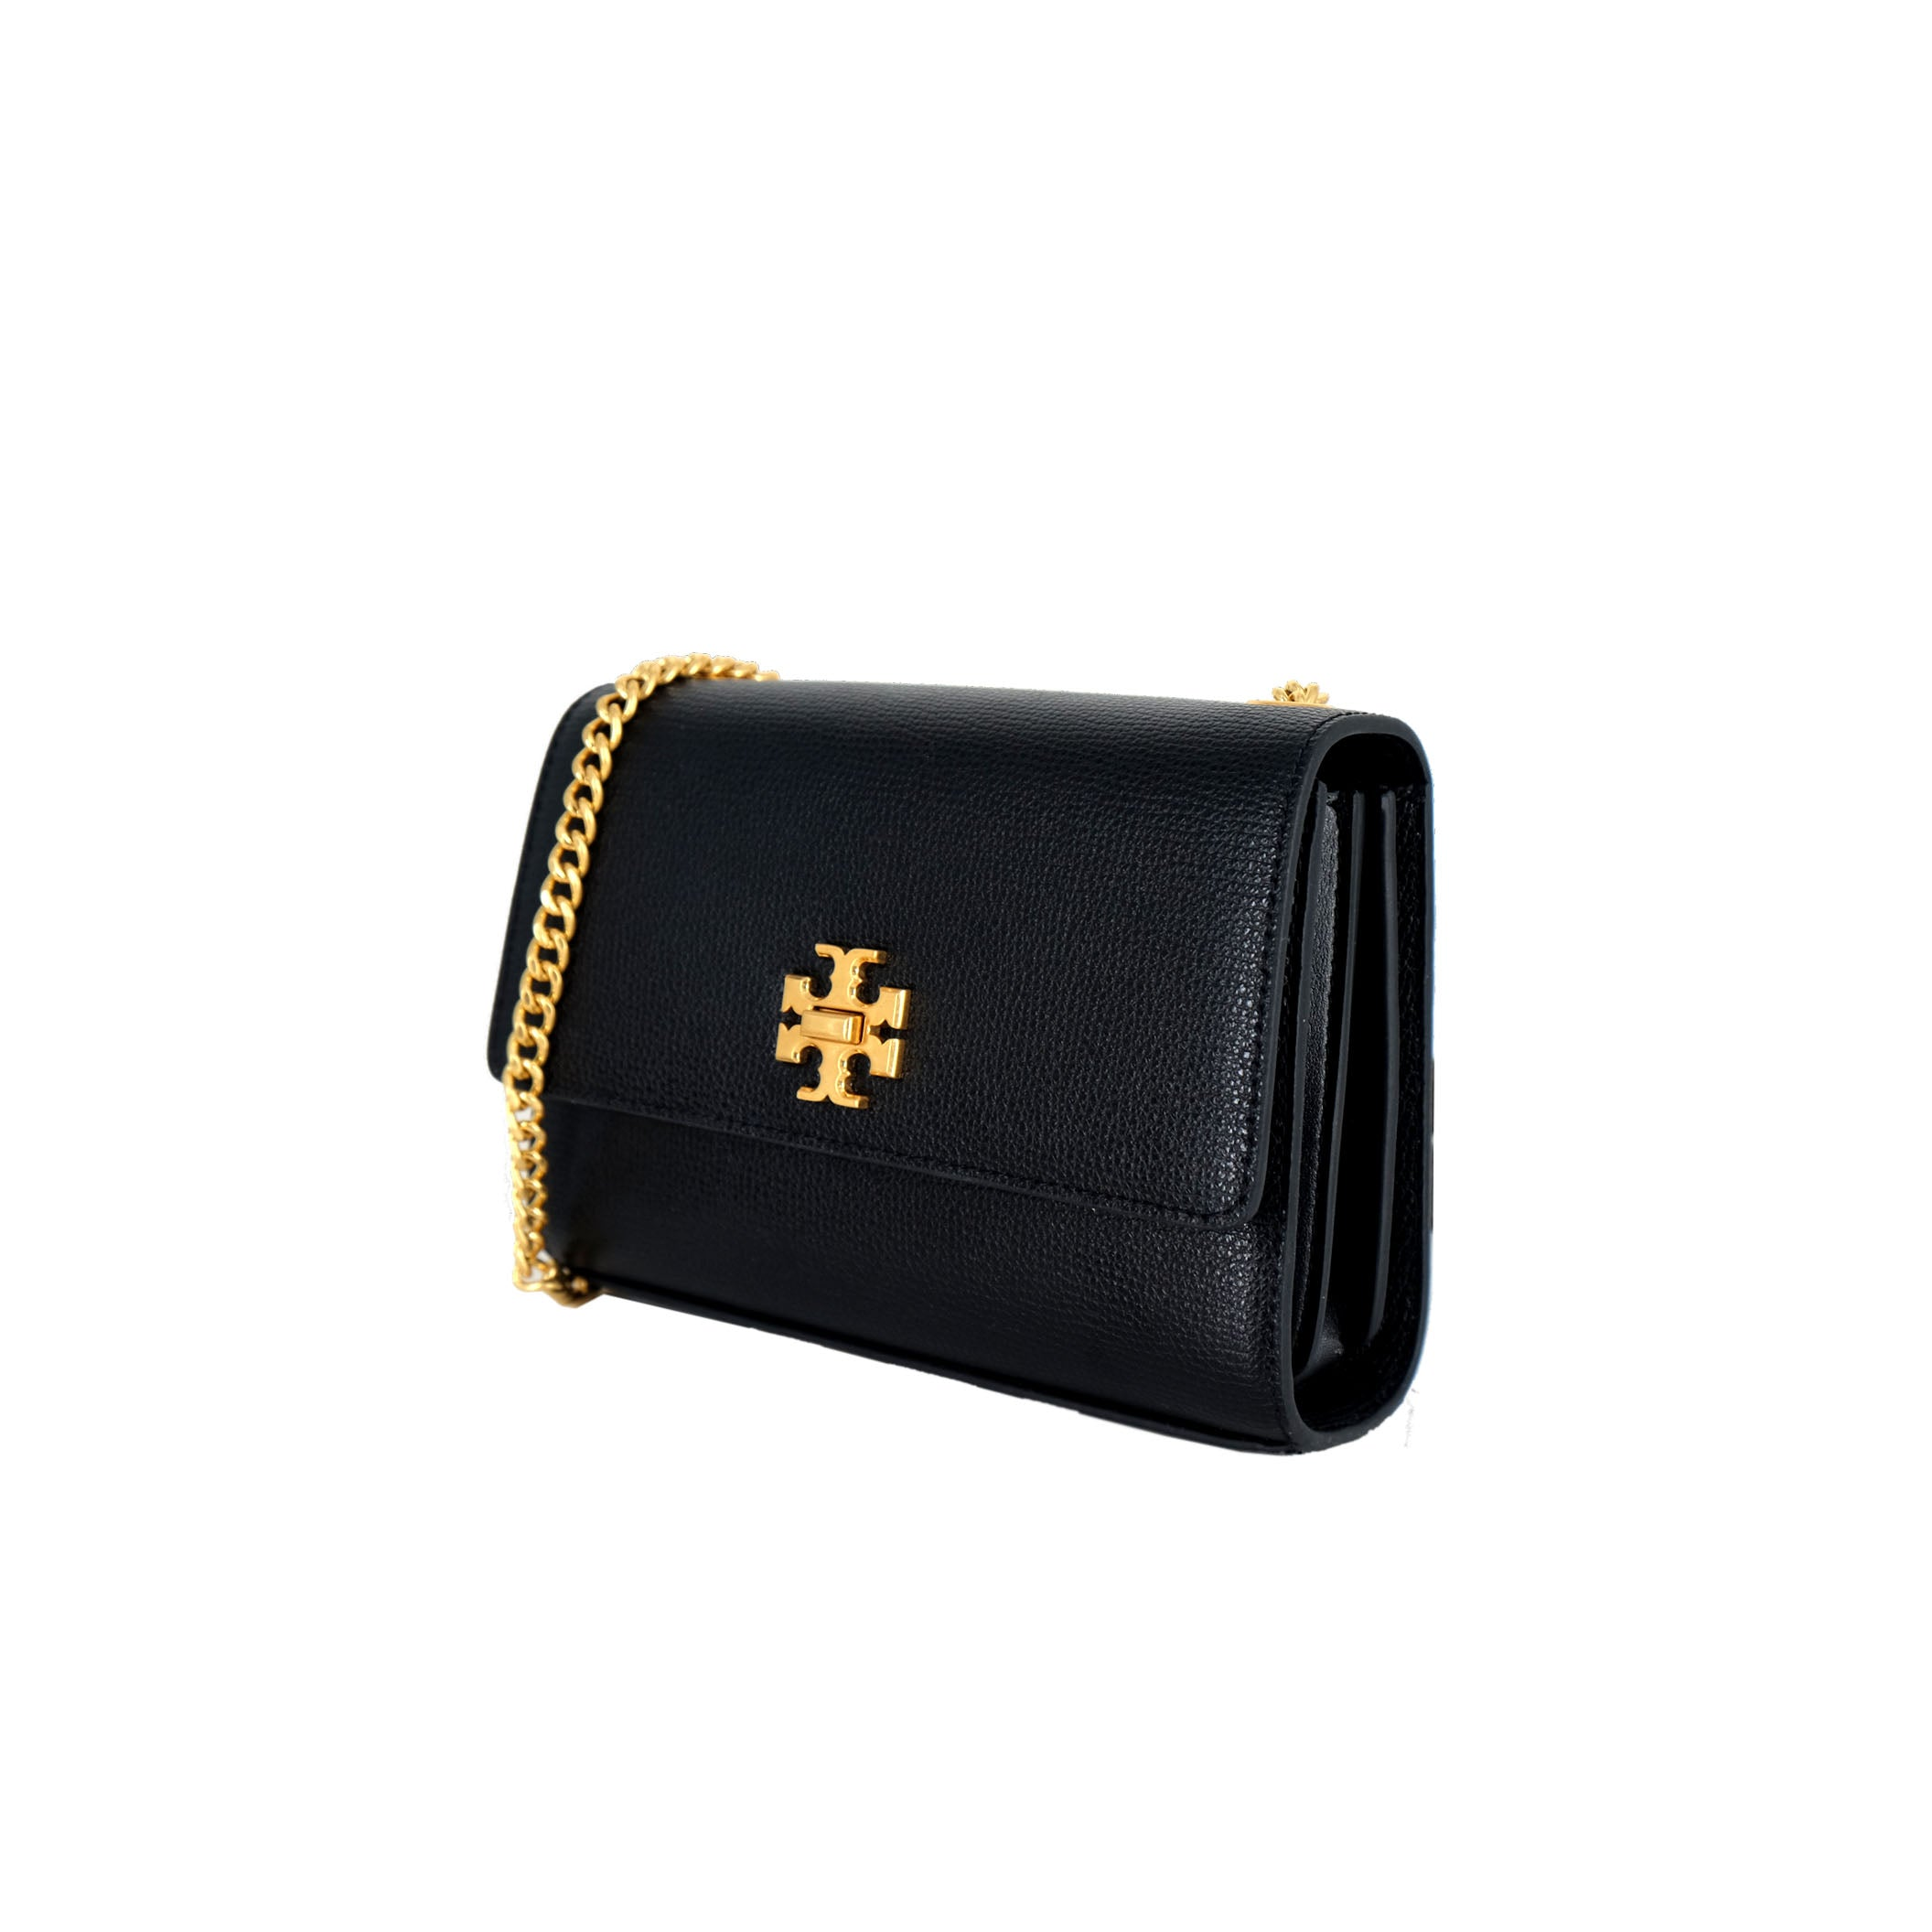 Kira Mini Crossbody Bag